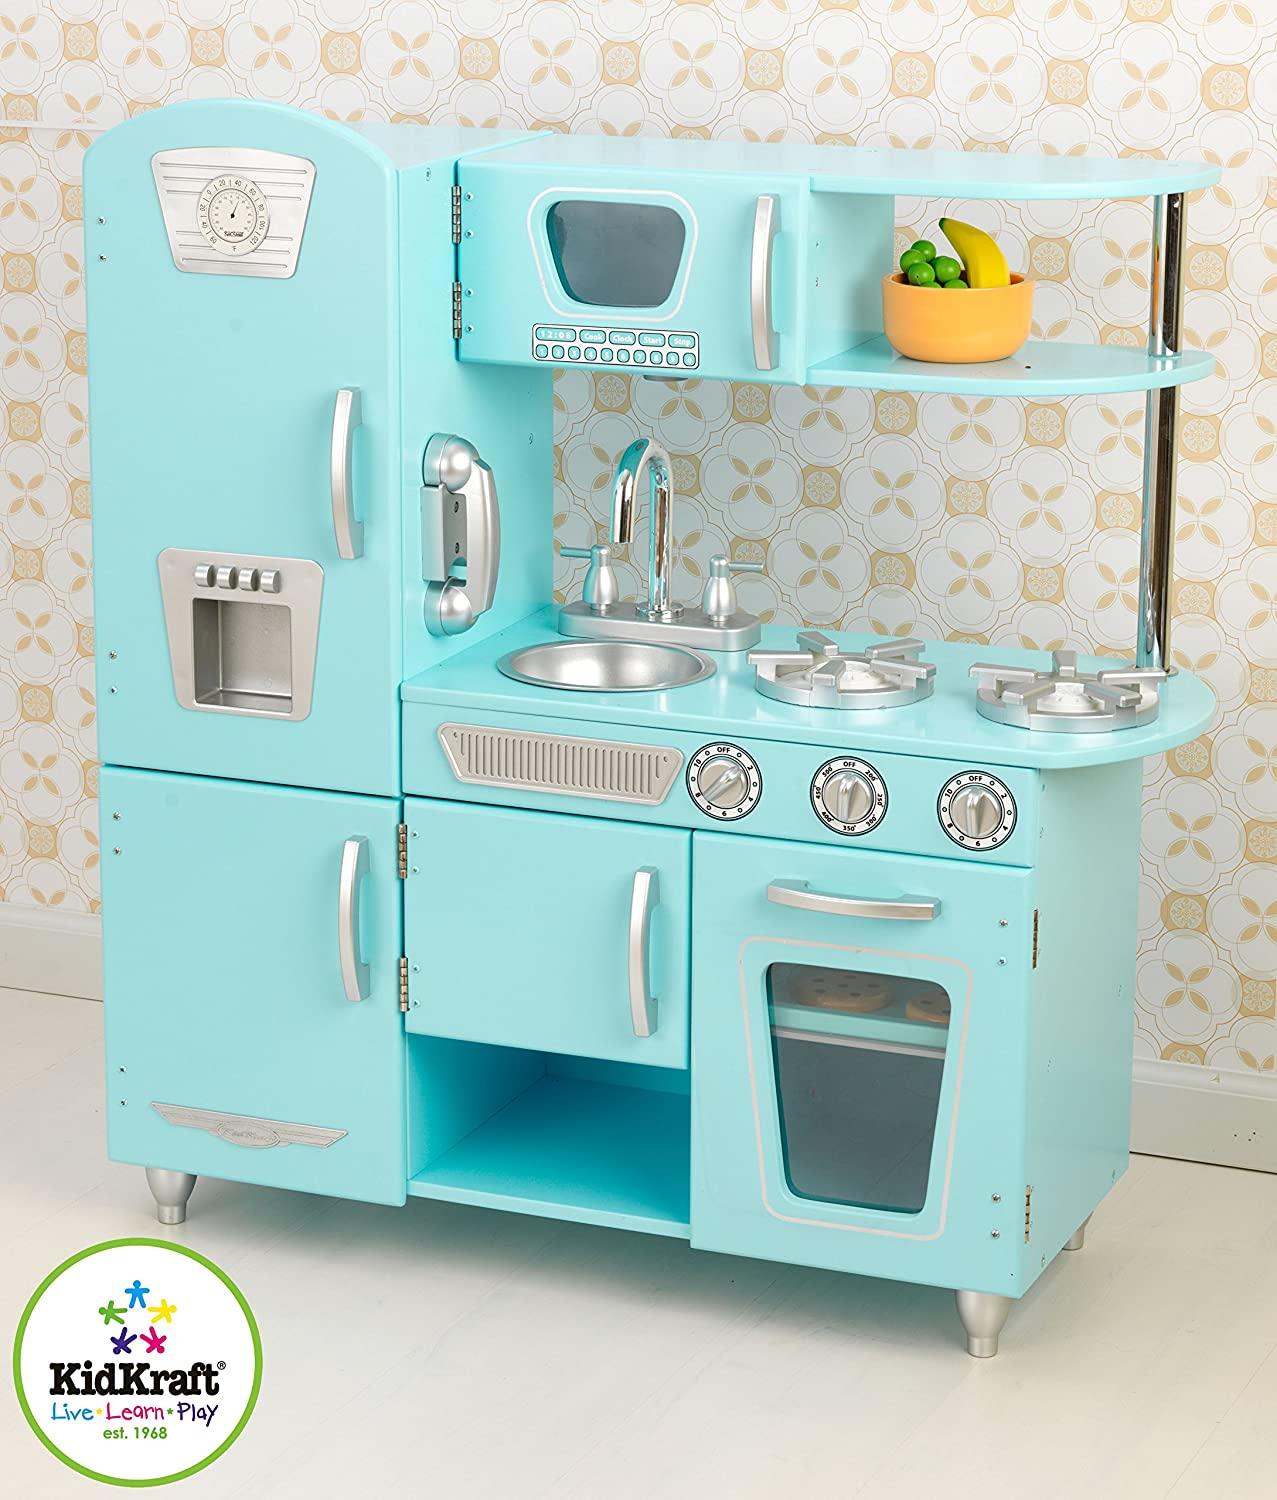 amazoncom kidkraft vintage kitchen in blue toys games - Kidkraft Vintage Kitchen